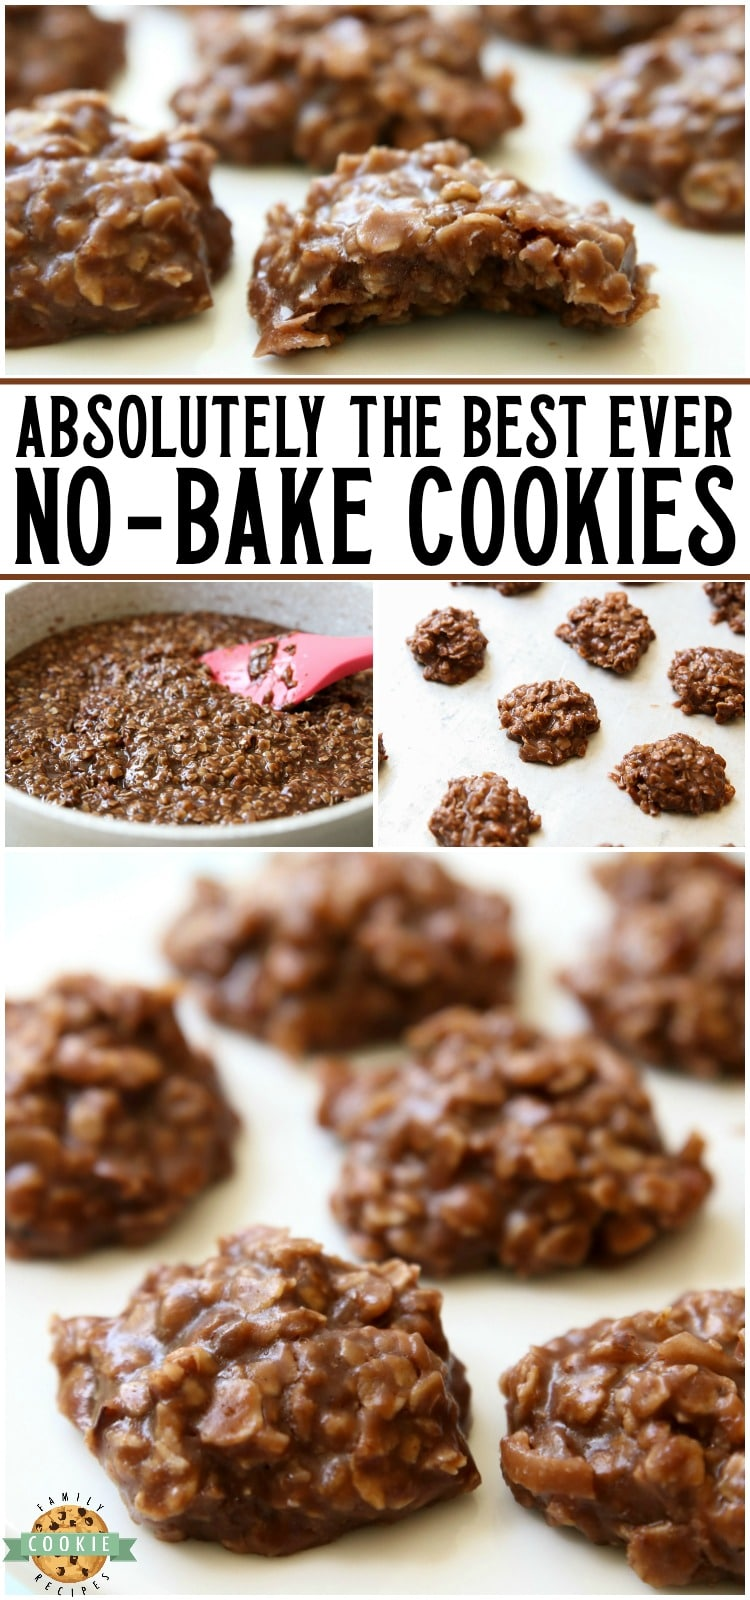 Easy No Bake Cookiesare simple, oatmeal chocolate cookies that don't require baking time! I've tried many & this peanut butter no bake cookies recipeis the absolute BEST. via @buttergirls